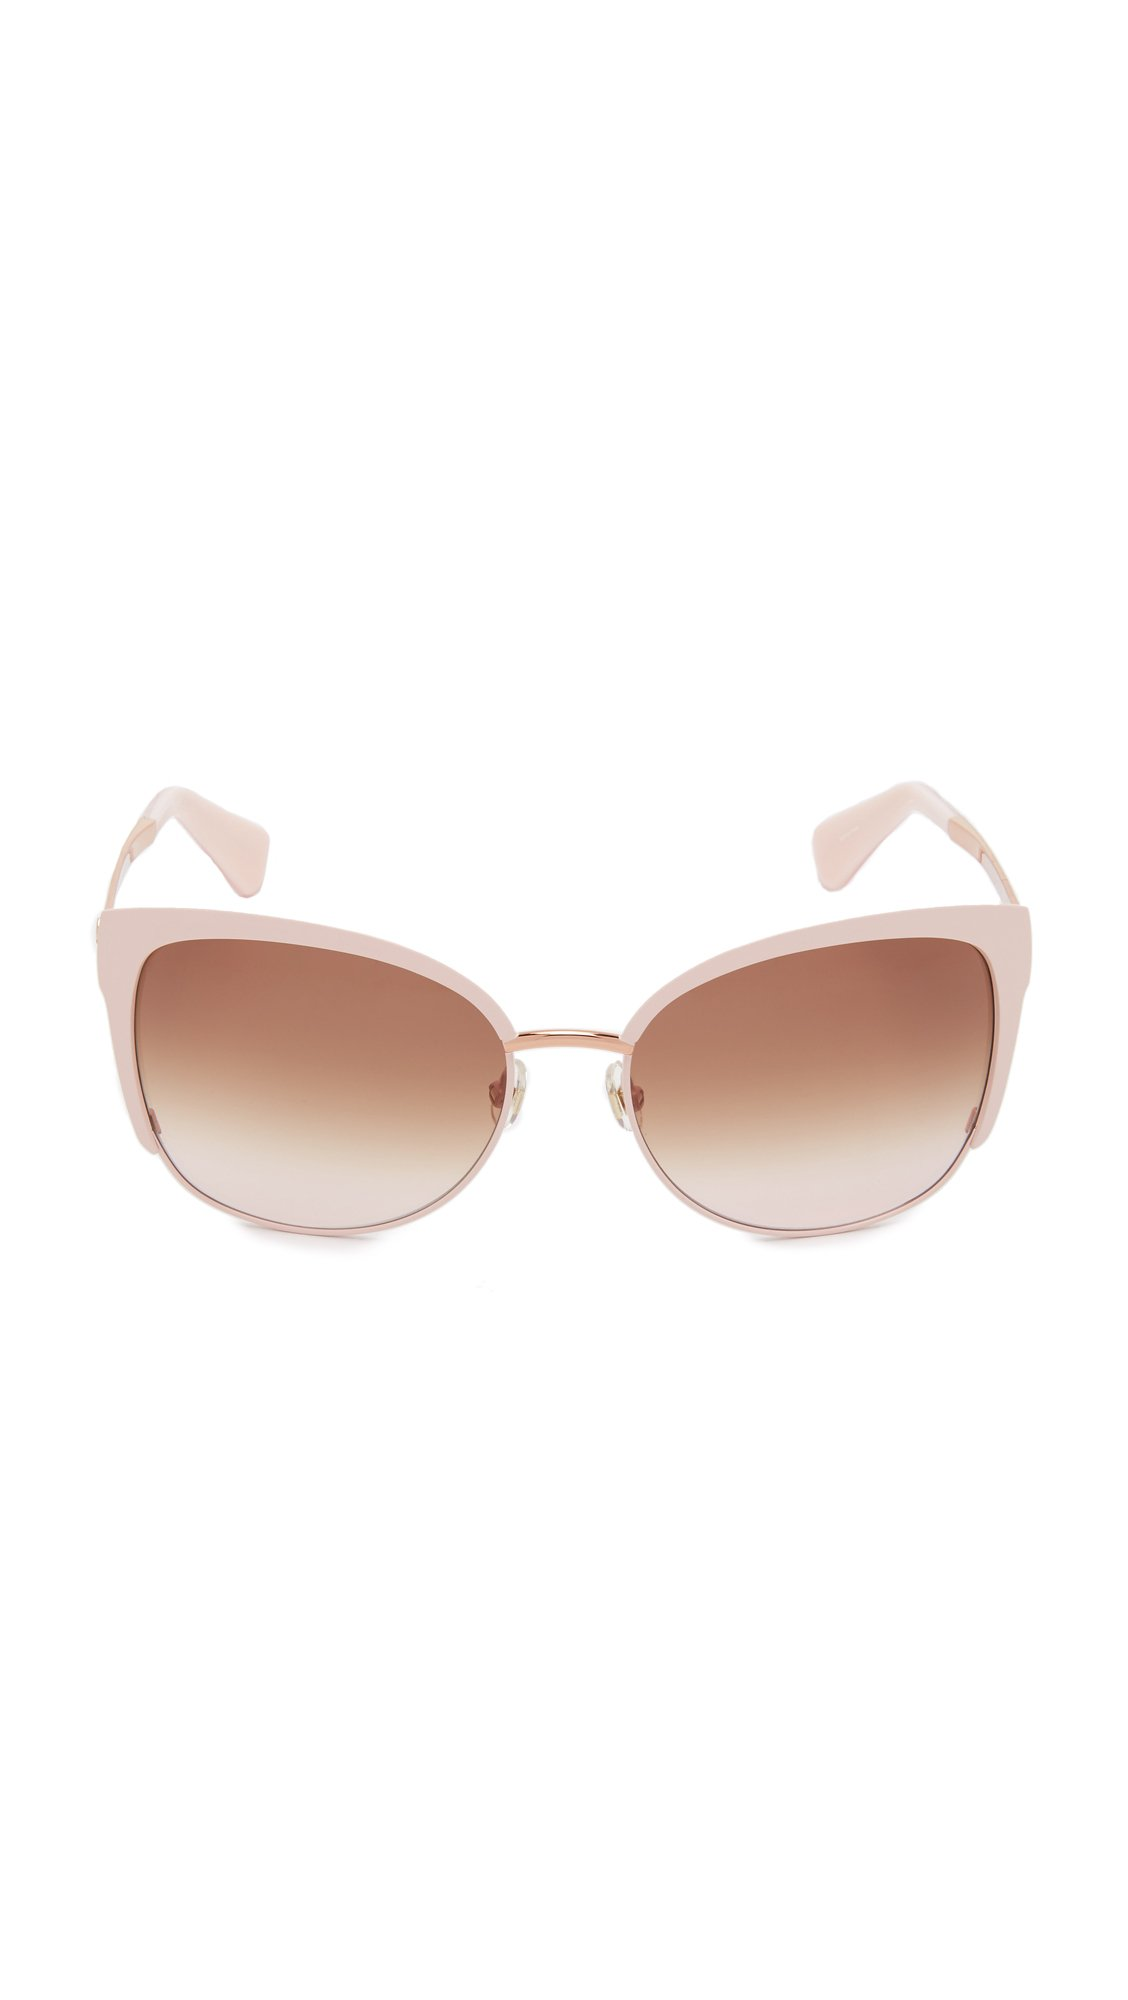 fa458f4efd Gallery. Previously sold at  Shopbop · Women s Tom Ford Cat Eye Women s  Blue Sunglasses ...